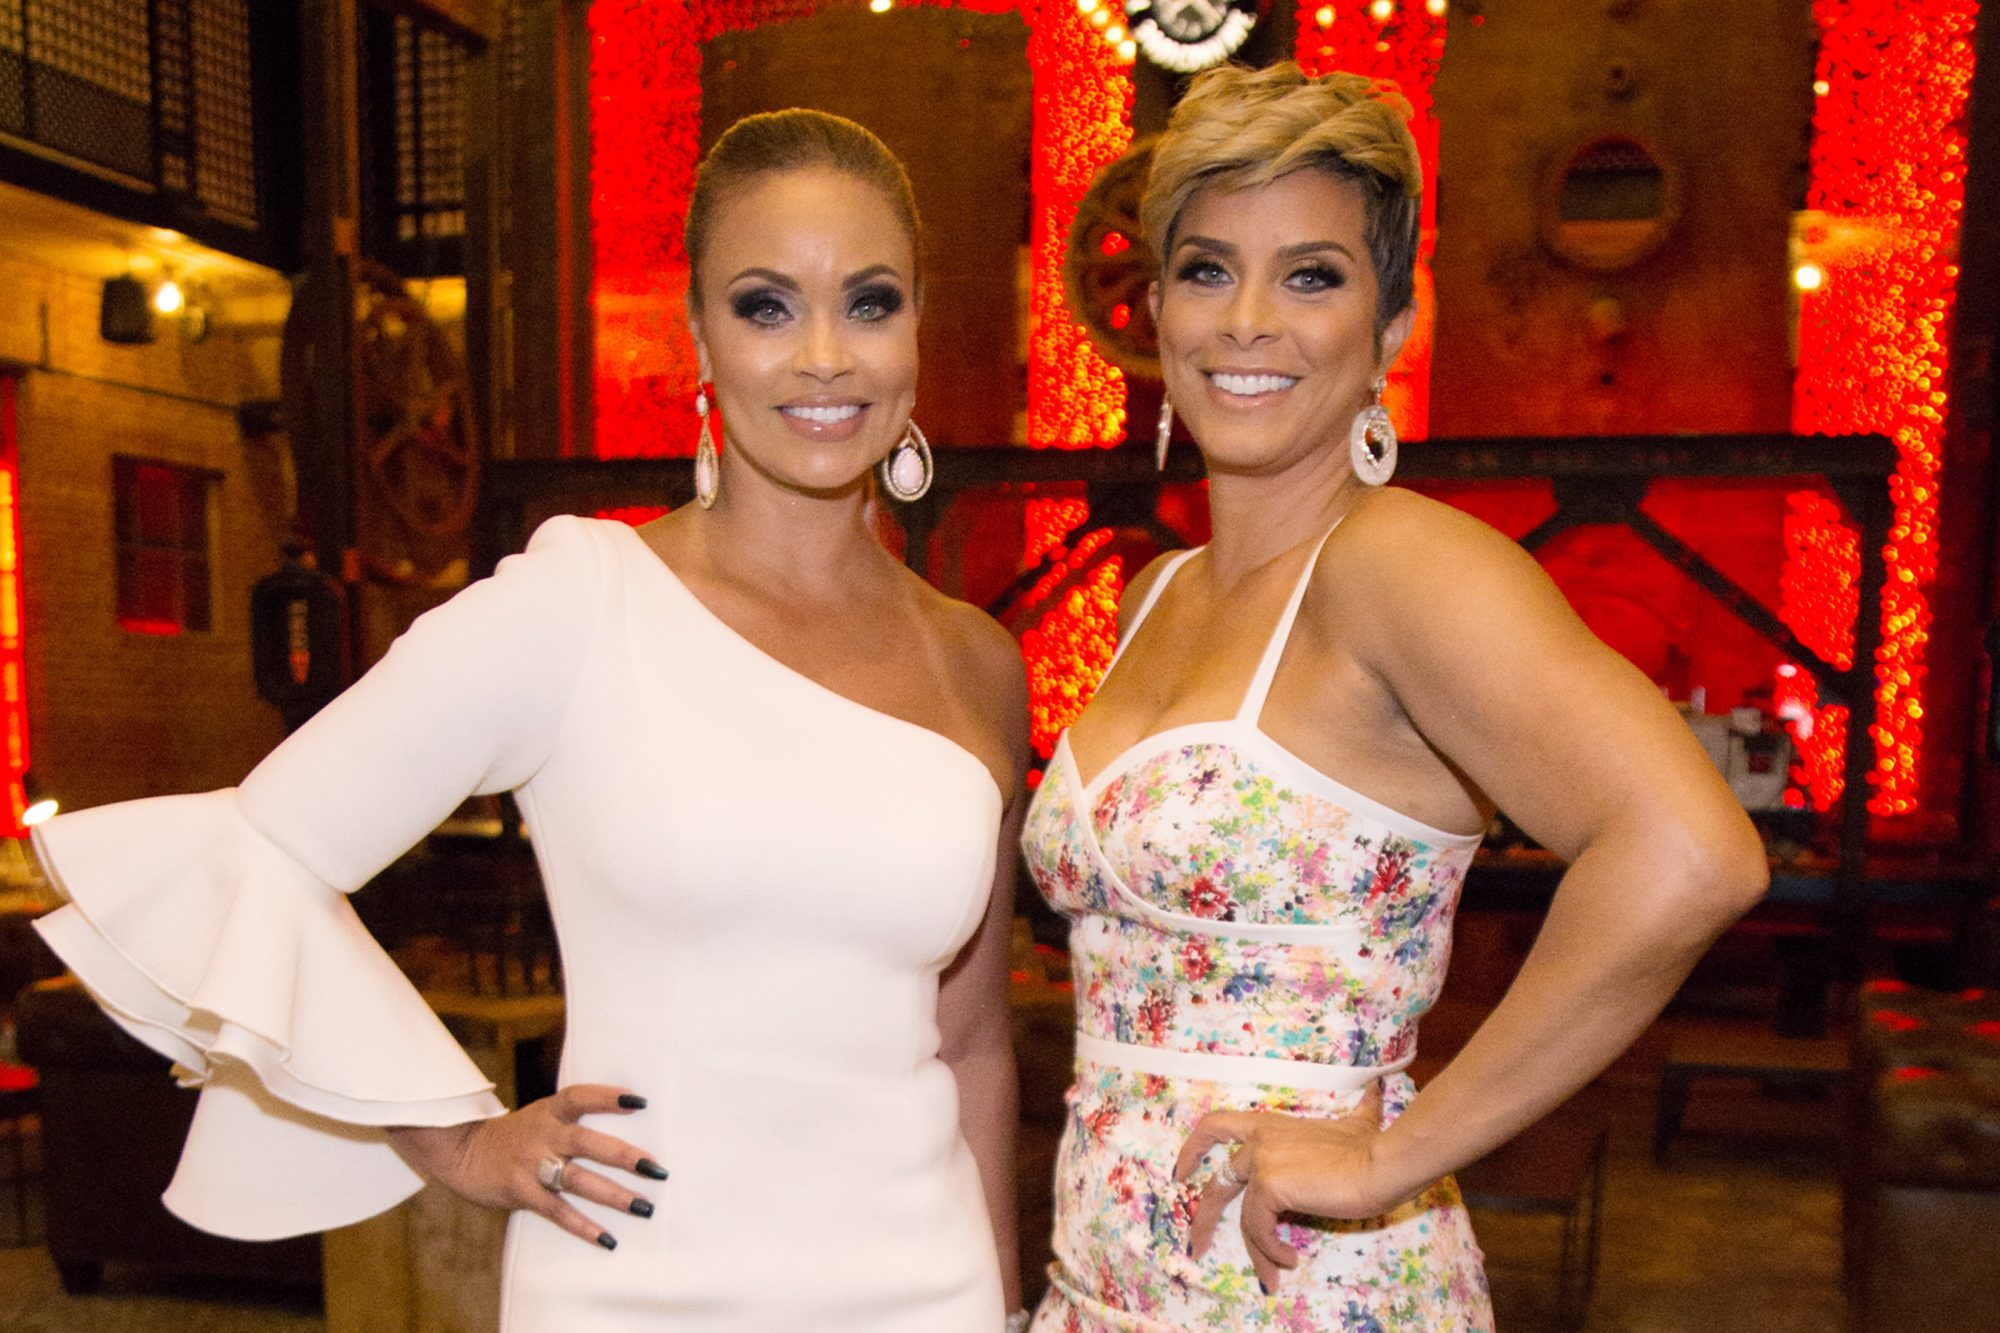 Gizelle Bryant and Robyn Dixon